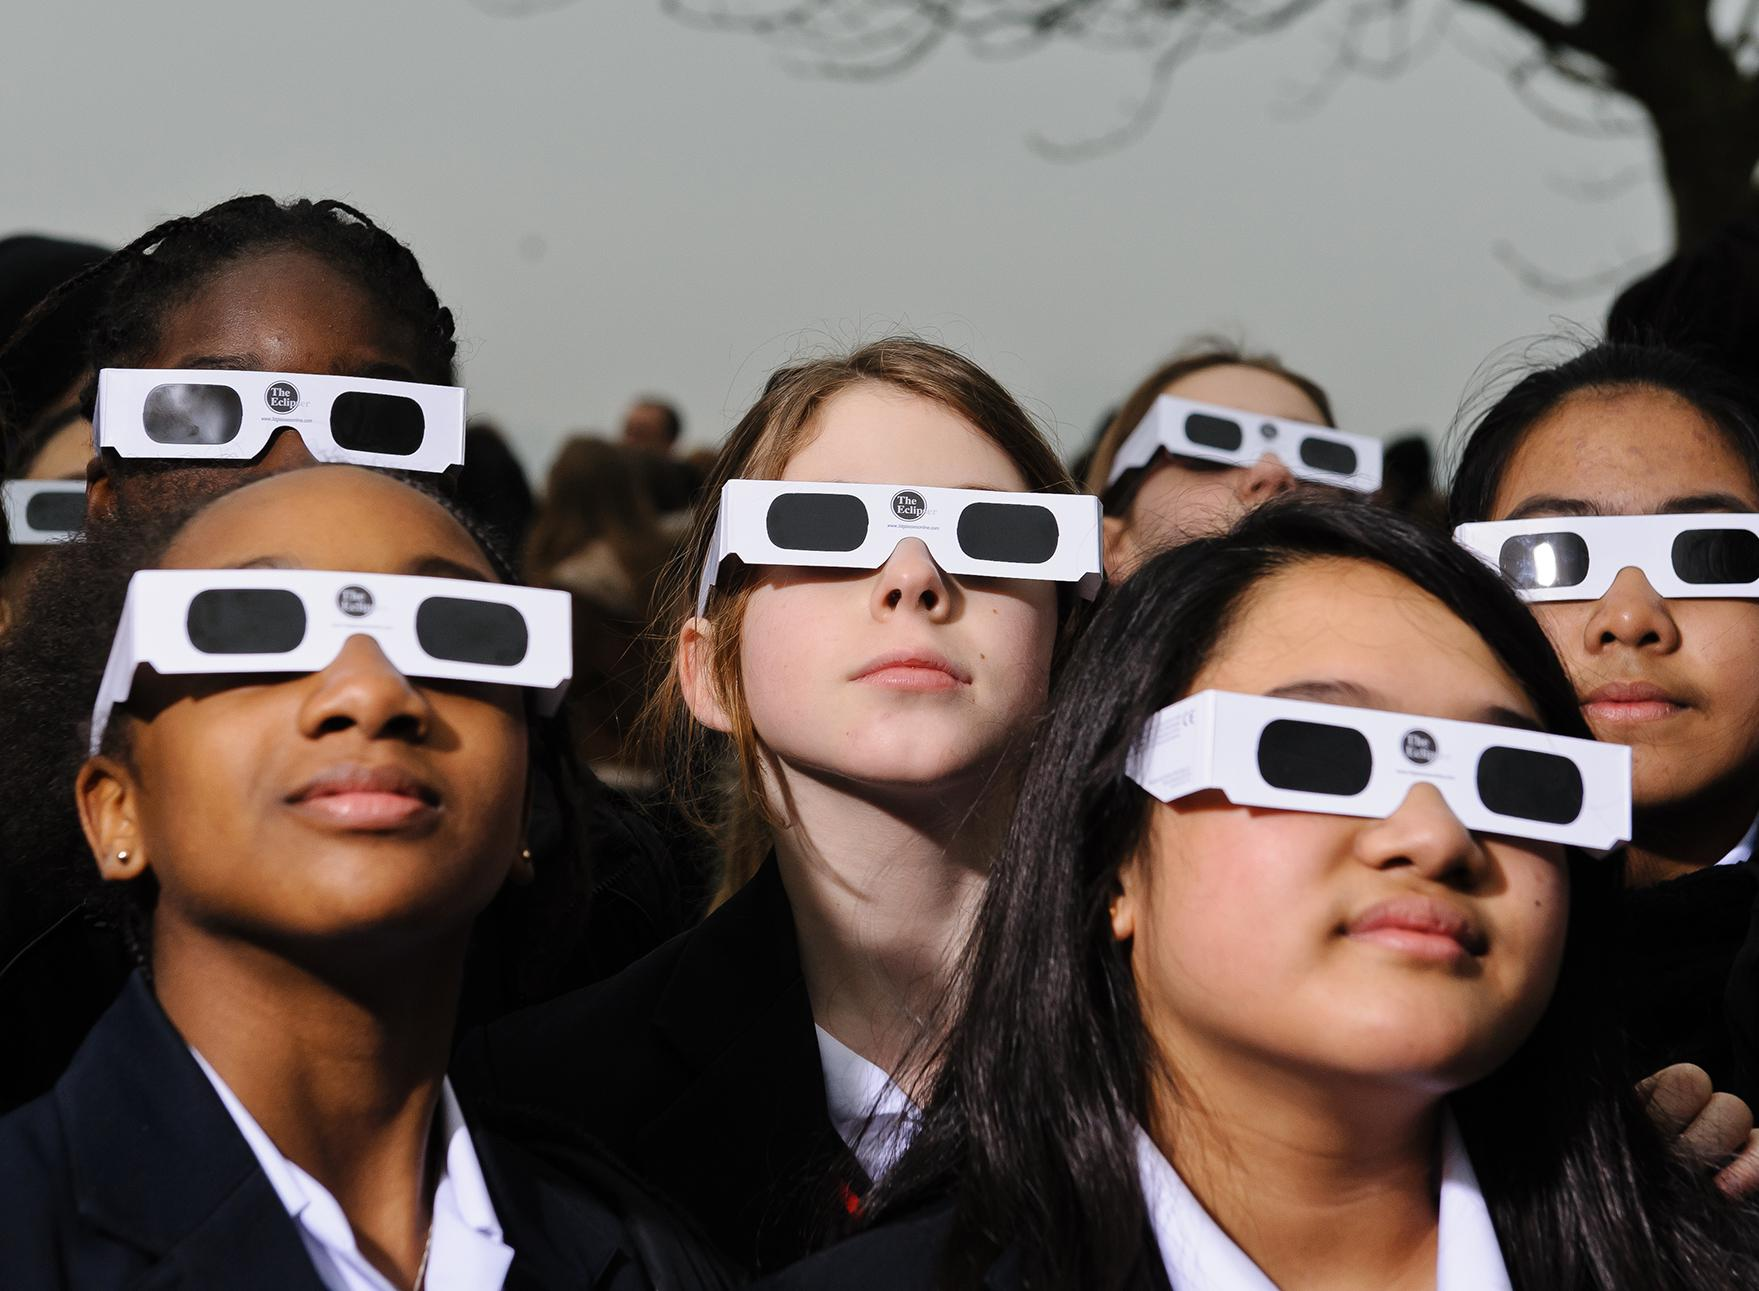 164b7fad41c Proper eye protection is a must for anyone looking up at a solar eclipse.  Eclipse glasses are far darker than regular sunglasses.